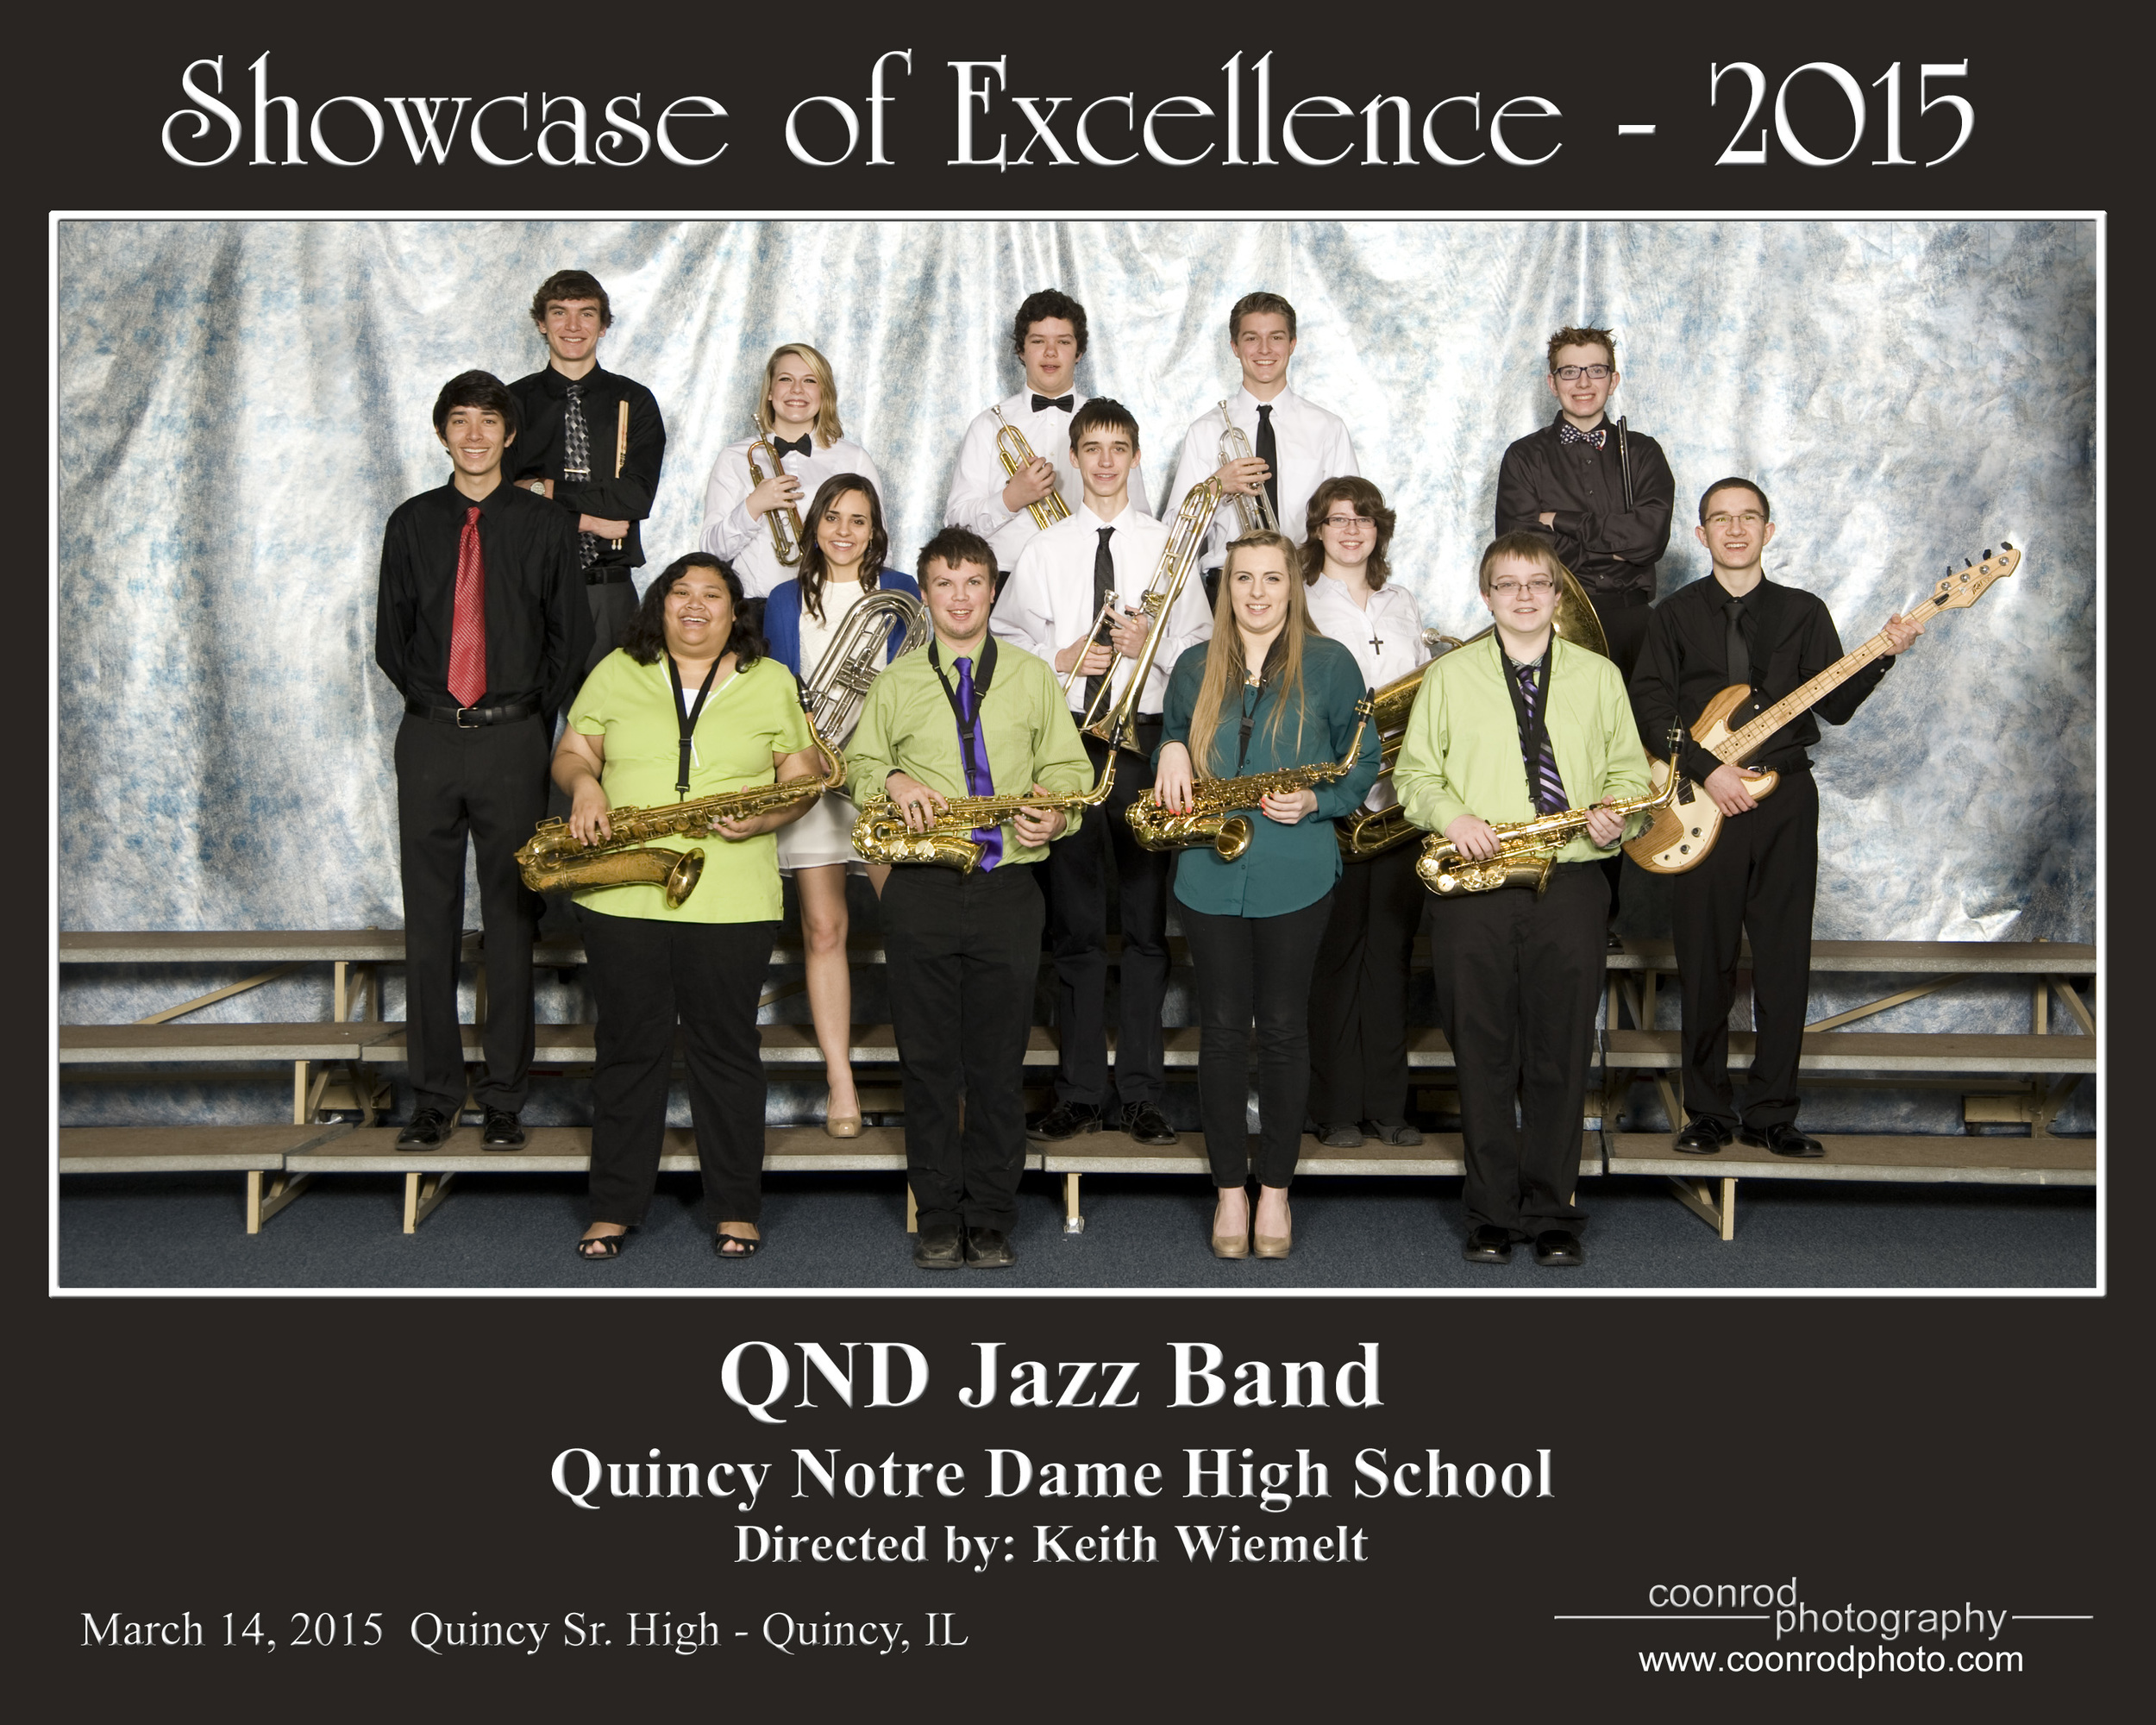 01 QND Jazz Band.jpg